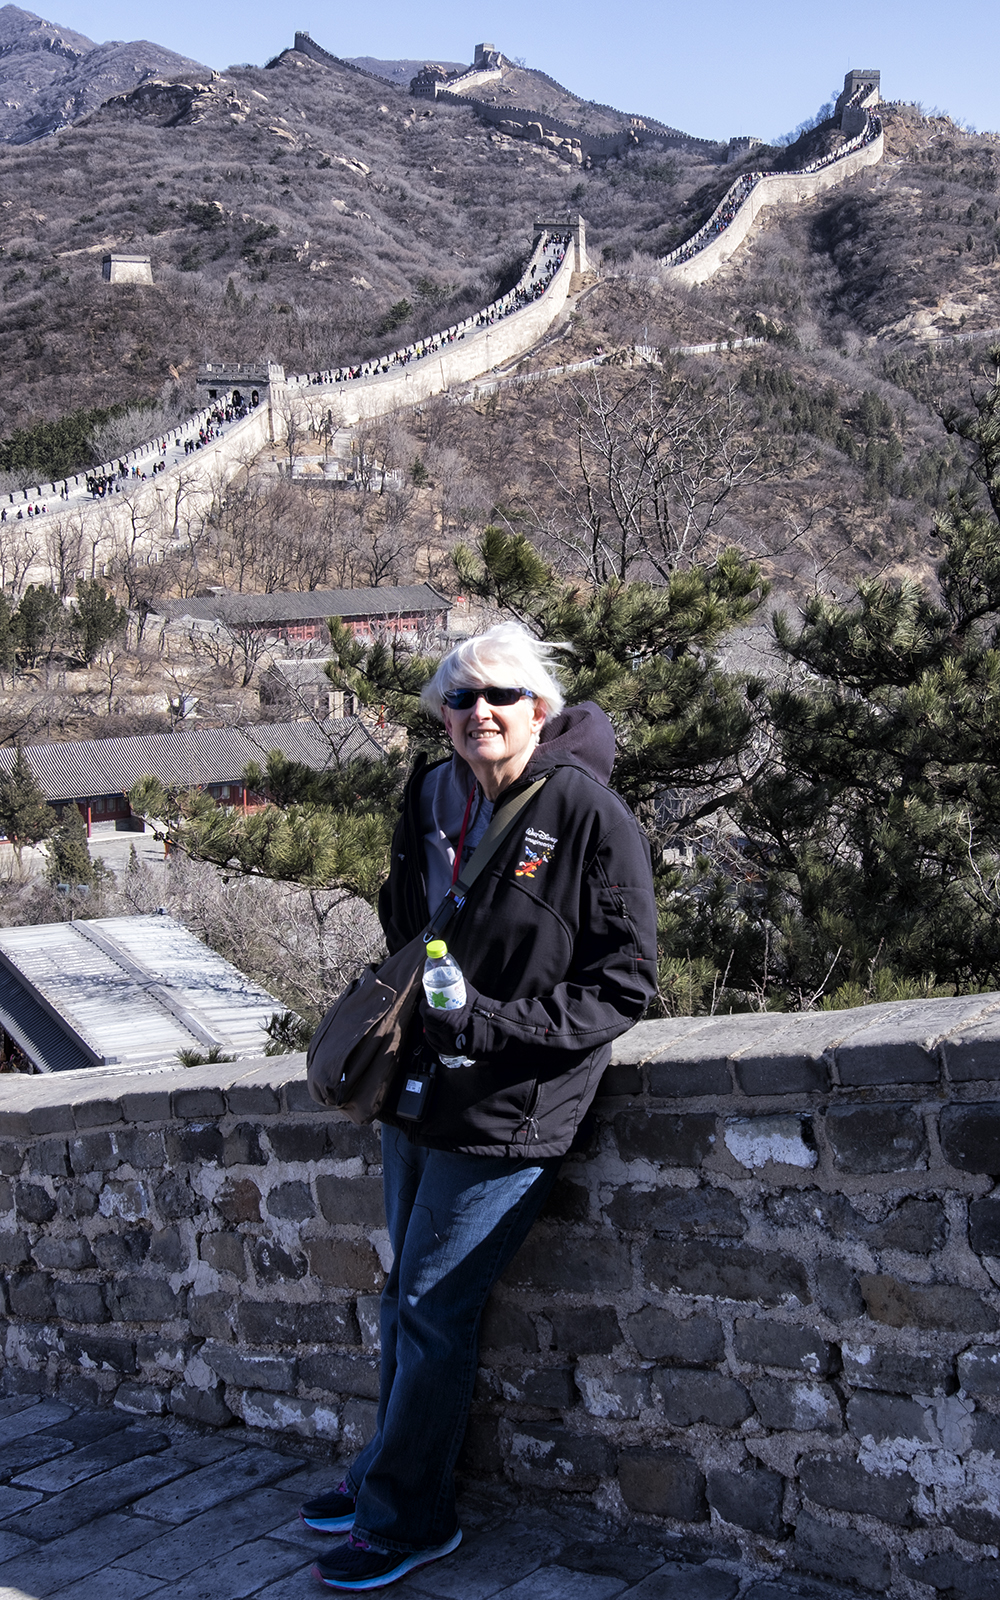 Linda on the Great Wall